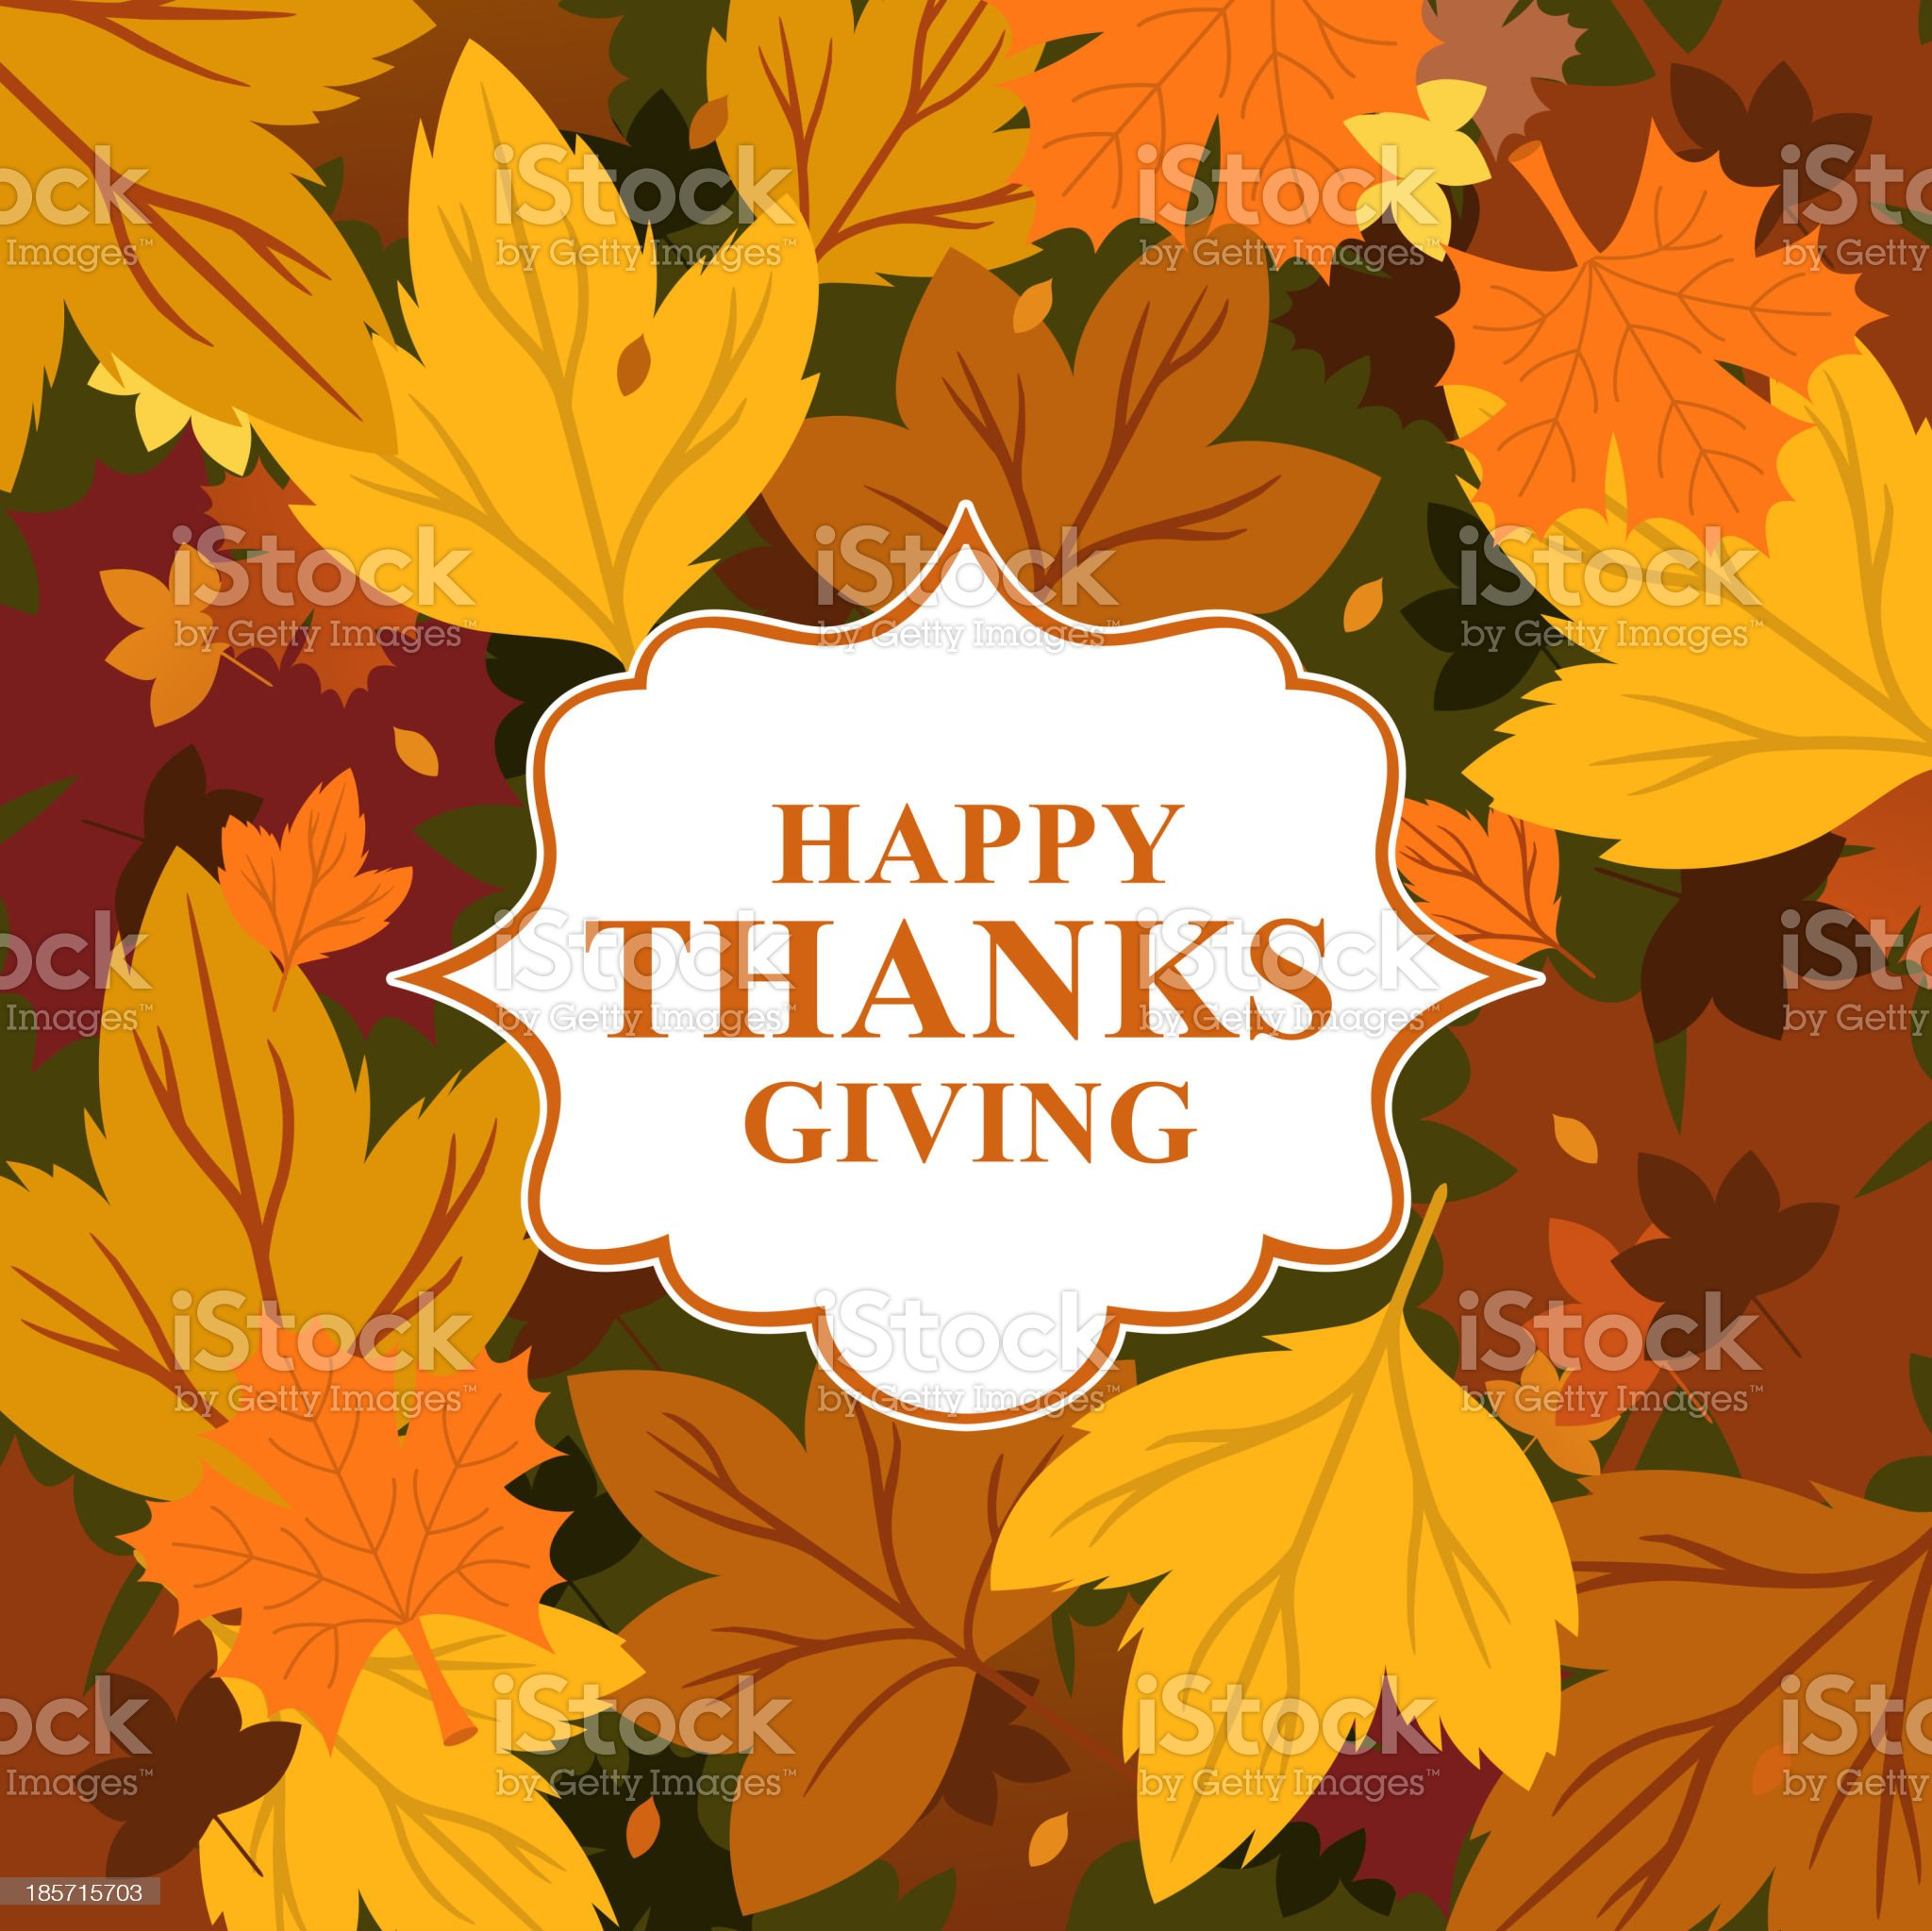 Happy Thanksgiving Giving Sign Design Card Label royalty-free stock vector art